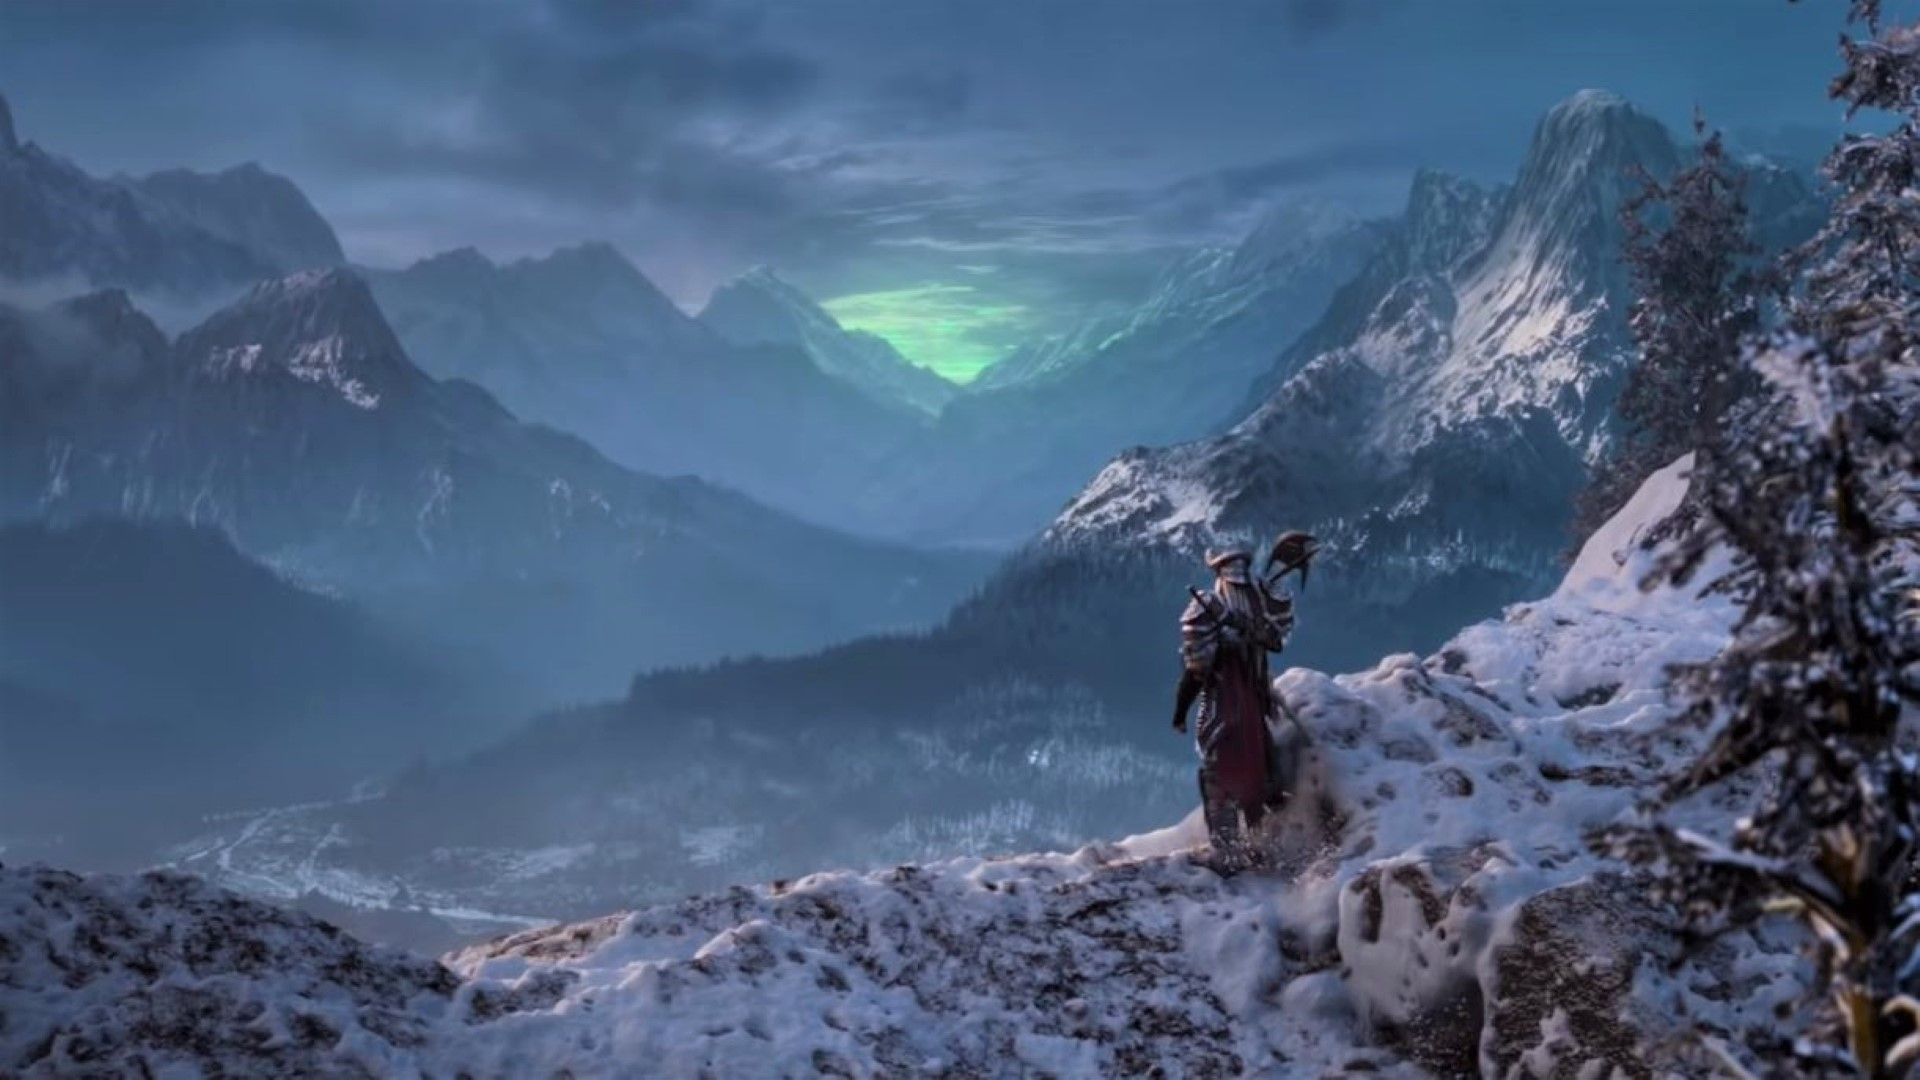 Here's how to watch The Elder Scrolls Online's Skyrim Chapter reveal livestream